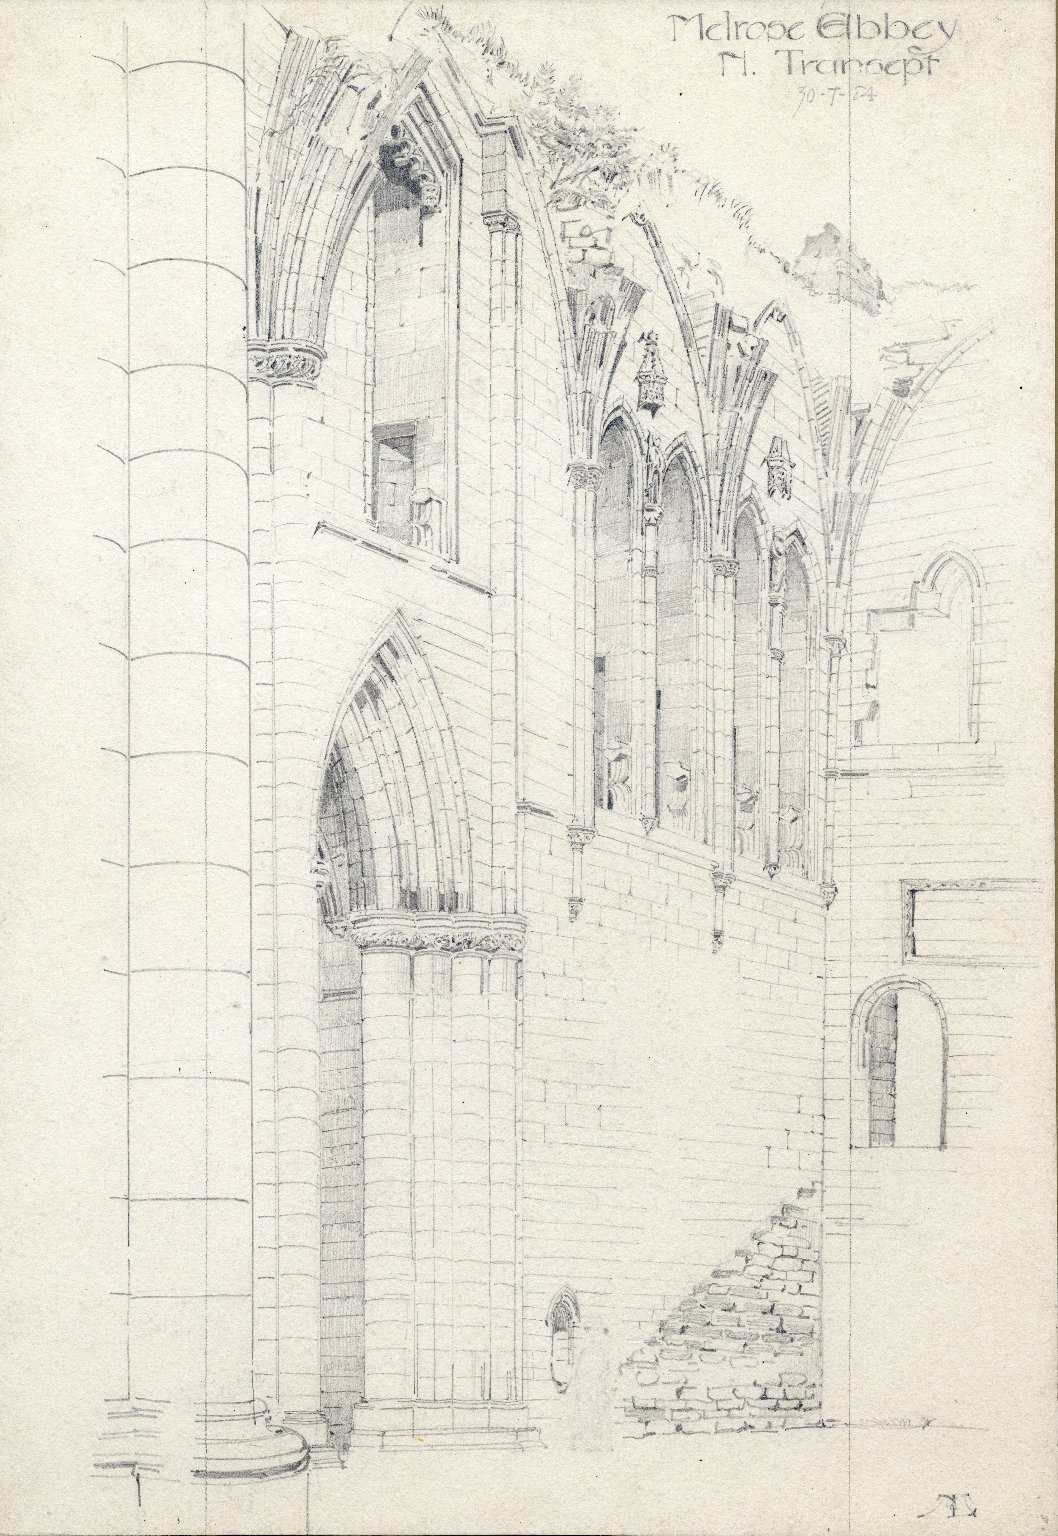 North Transept of Melrose Abbey